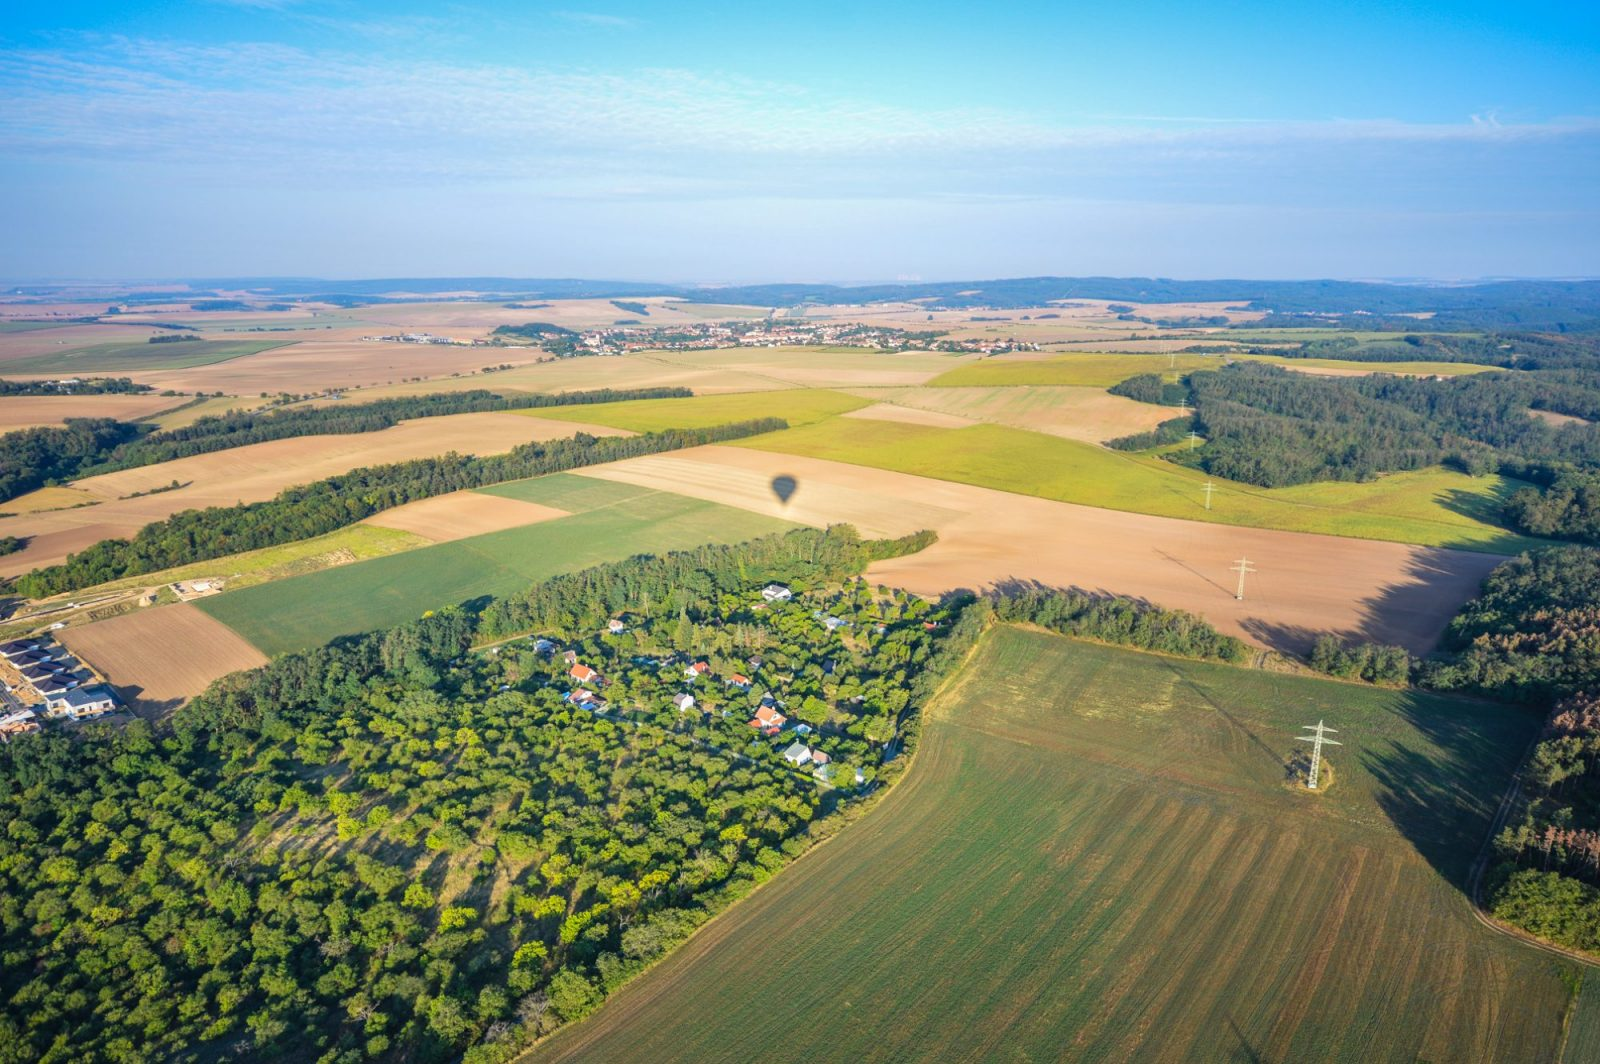 Views From a Hot Air Balloon Ride Over Brno